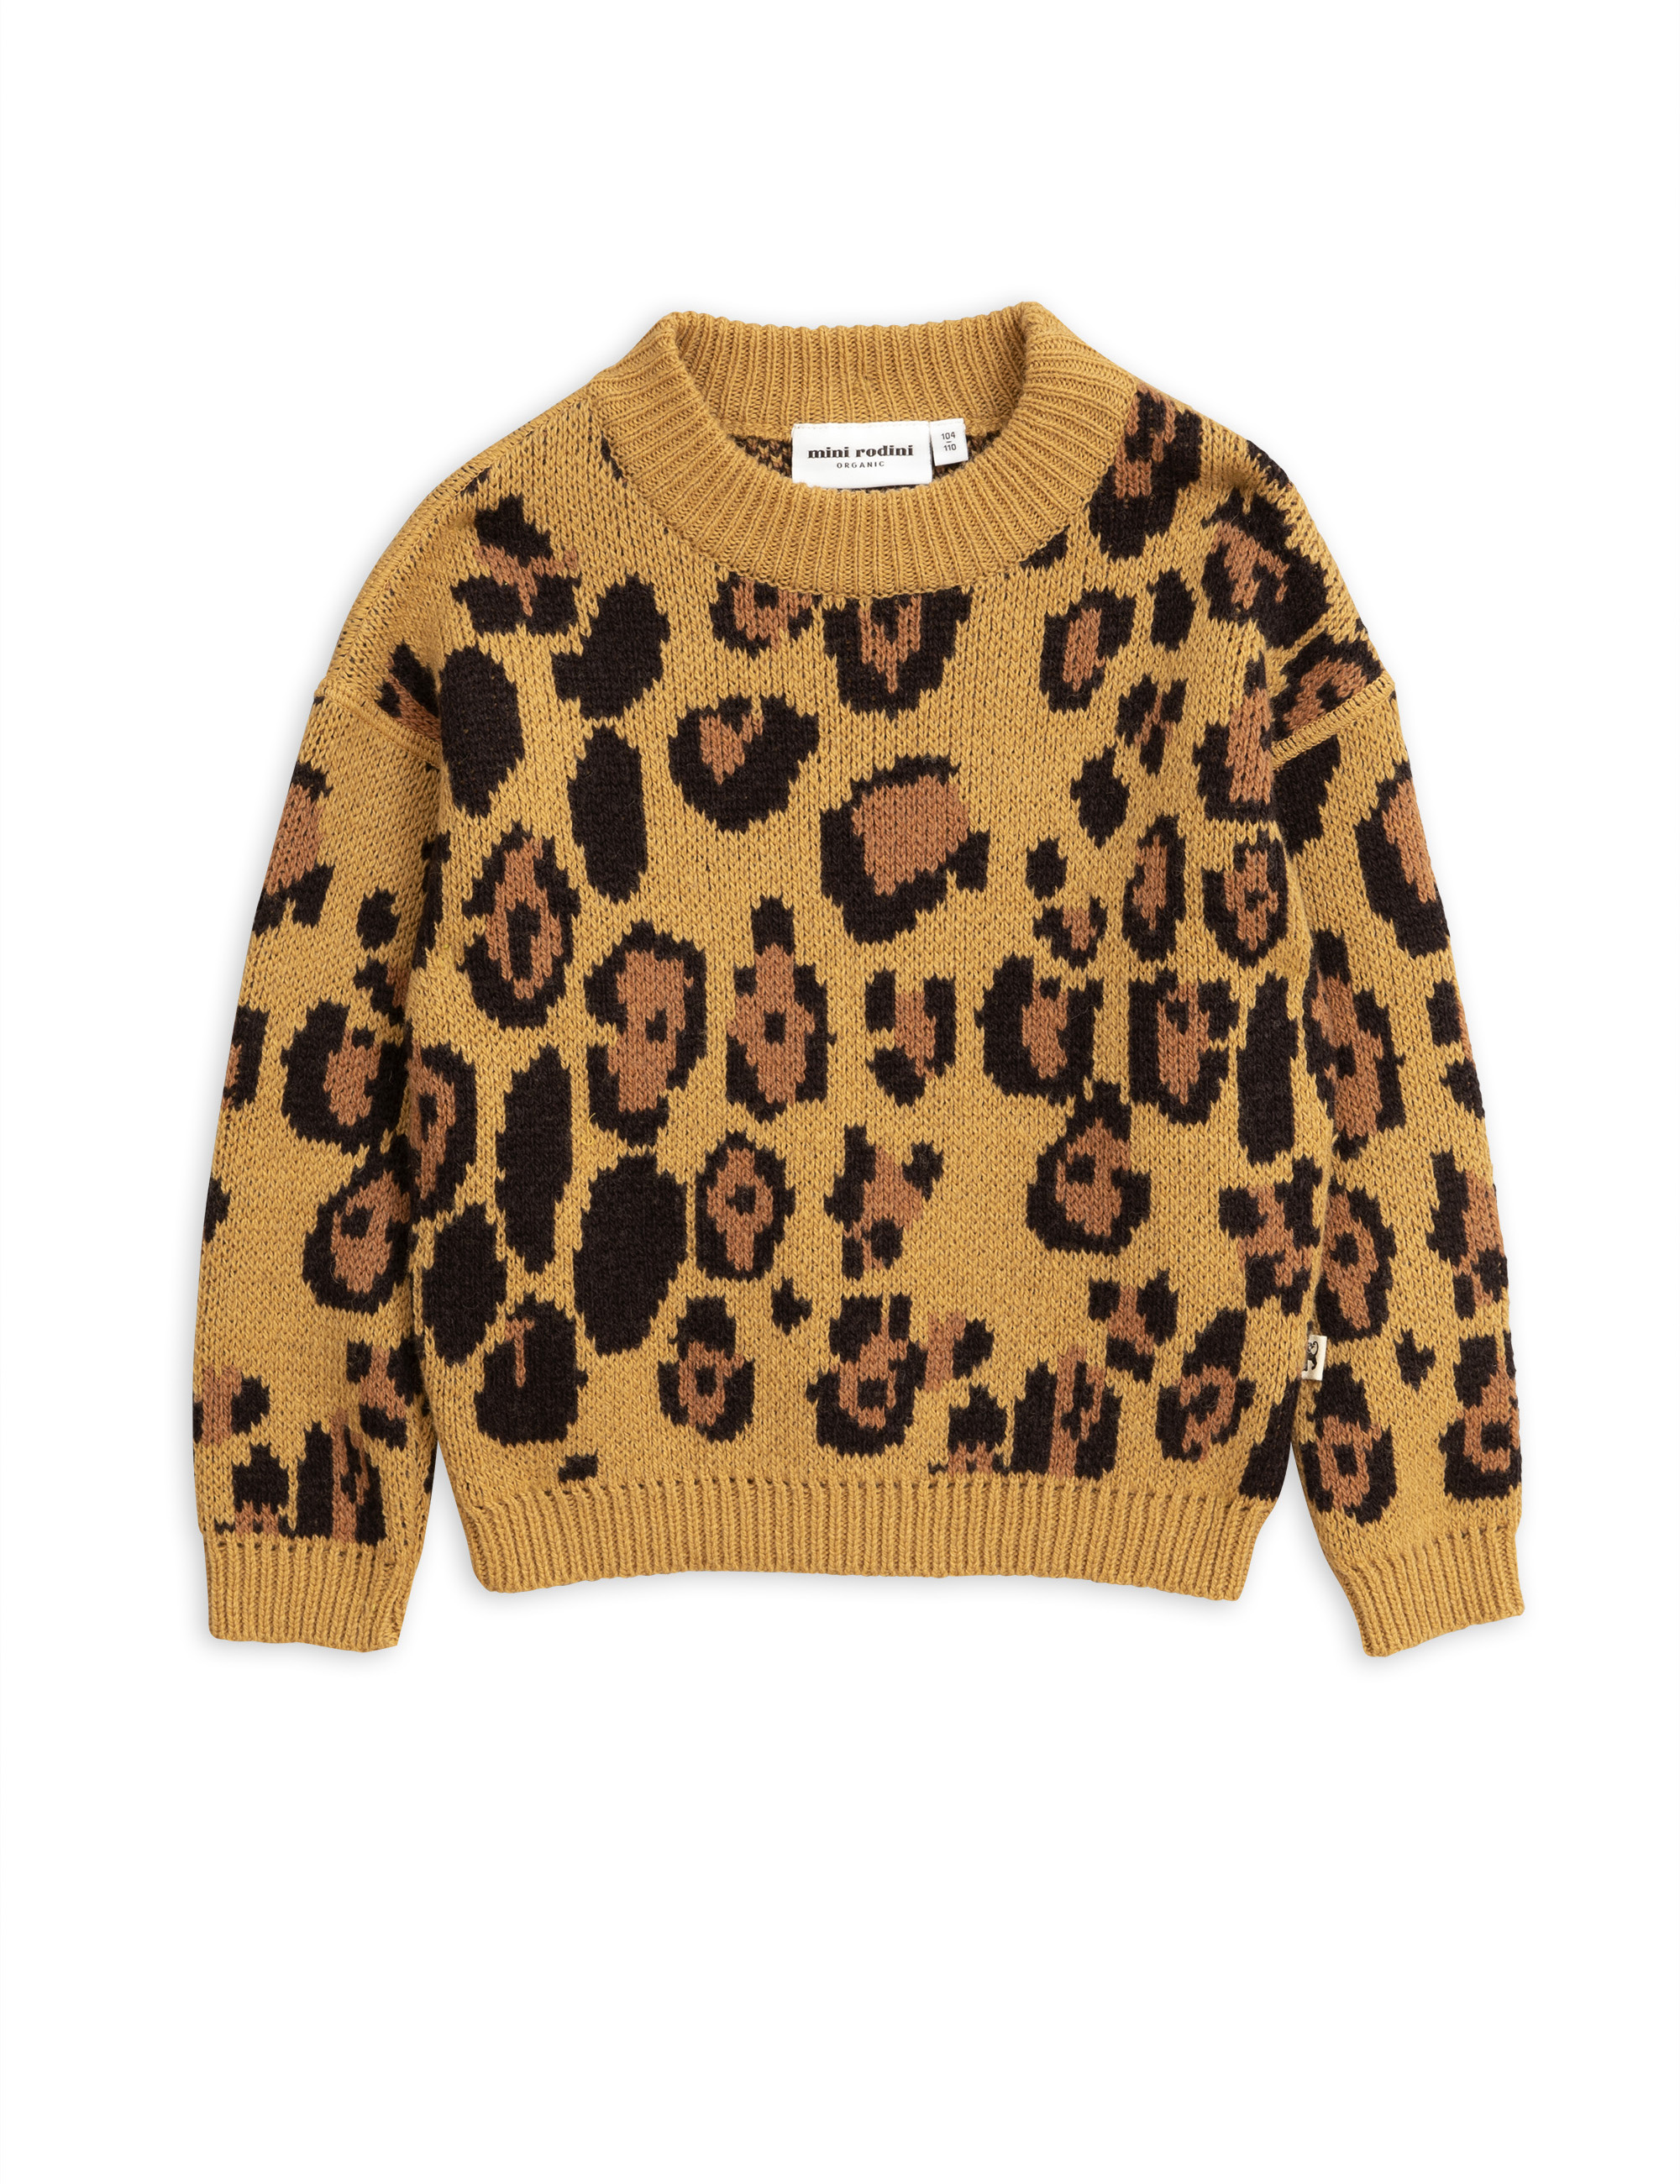 Mini Rodini - Leo knitted sweater brown